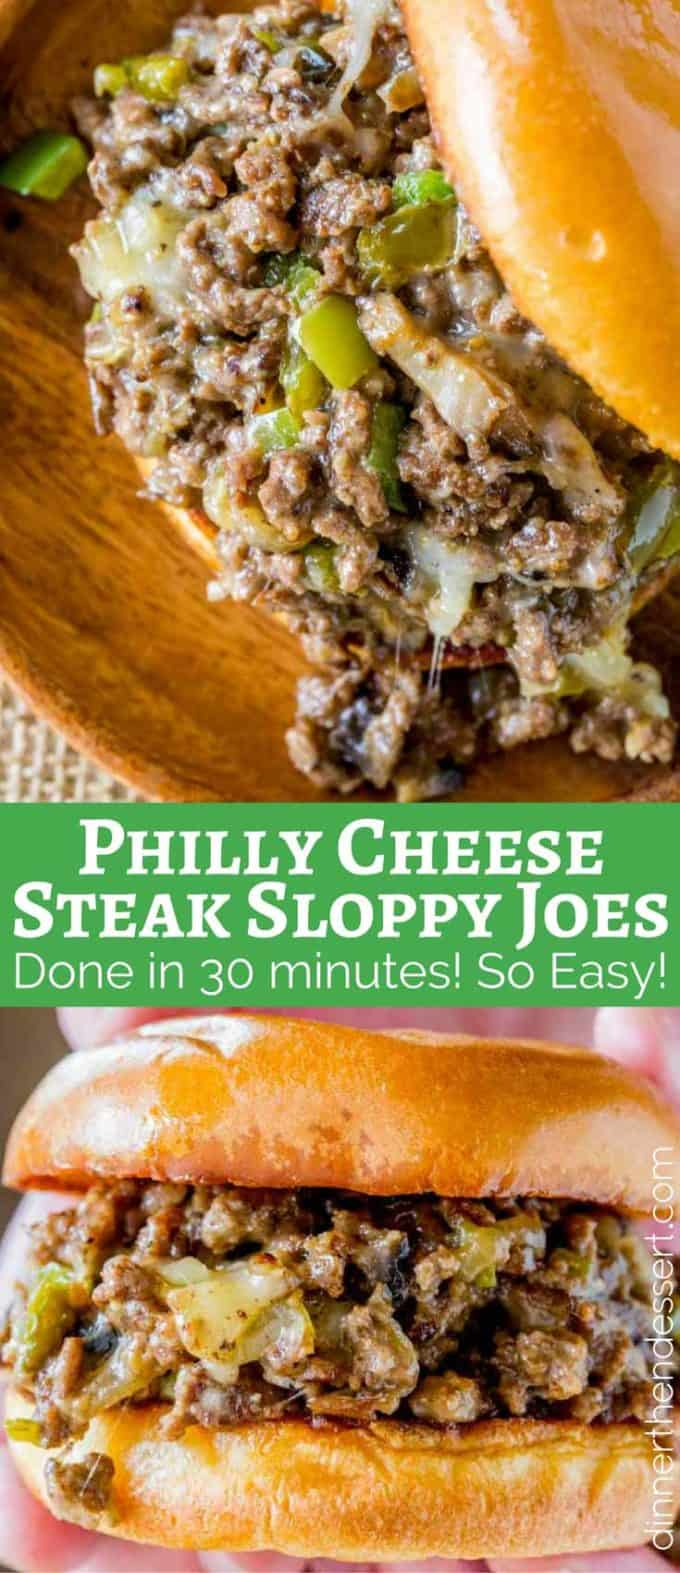 We make these Philly Cheese Steak Sloppy Joes ALL THE TIME!